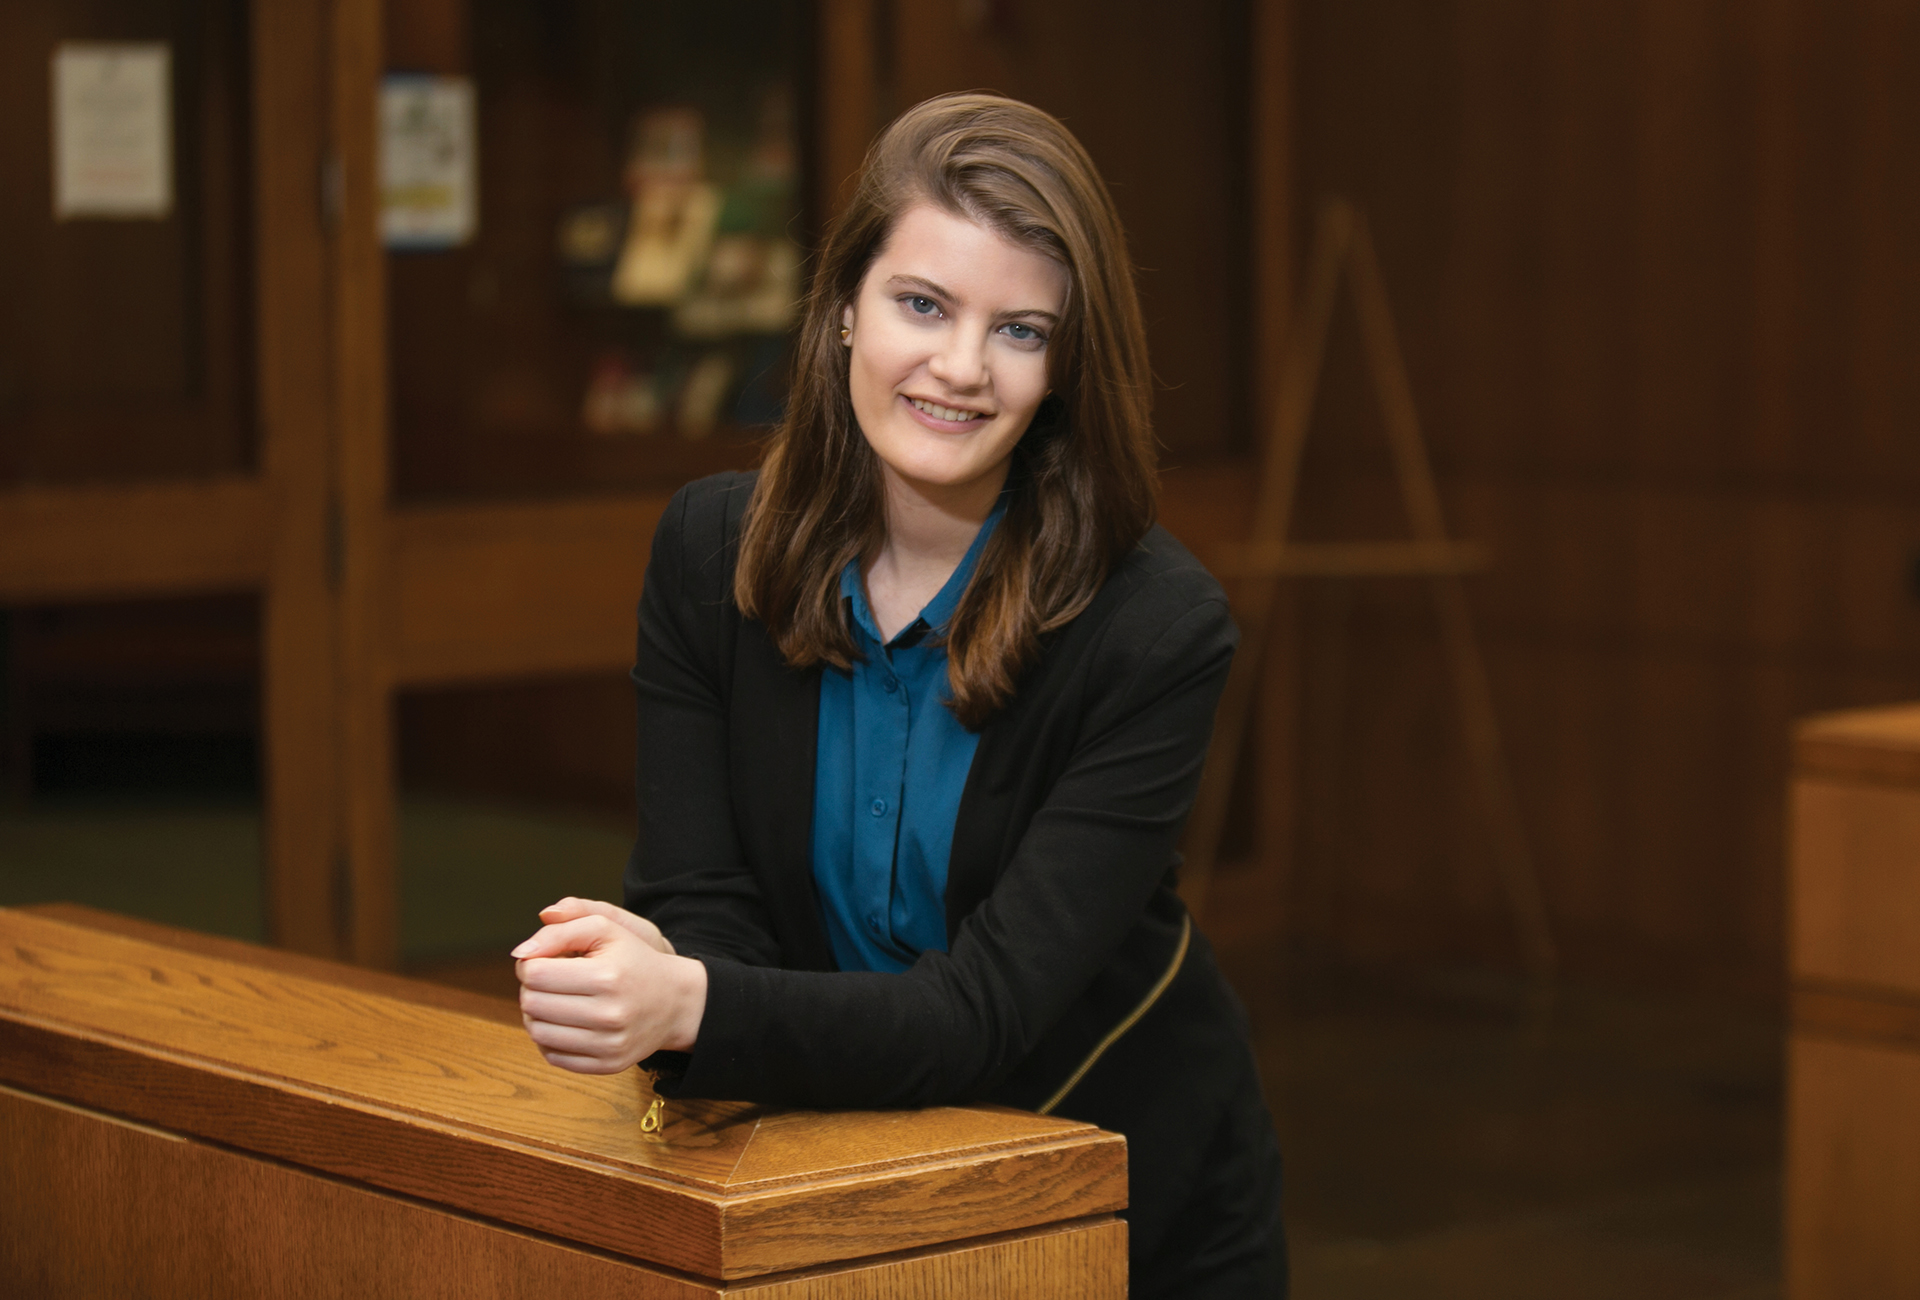 Abigail Rosenfeld '21, the first recipient of the Lawrence A. Adelman '78 Scholarship